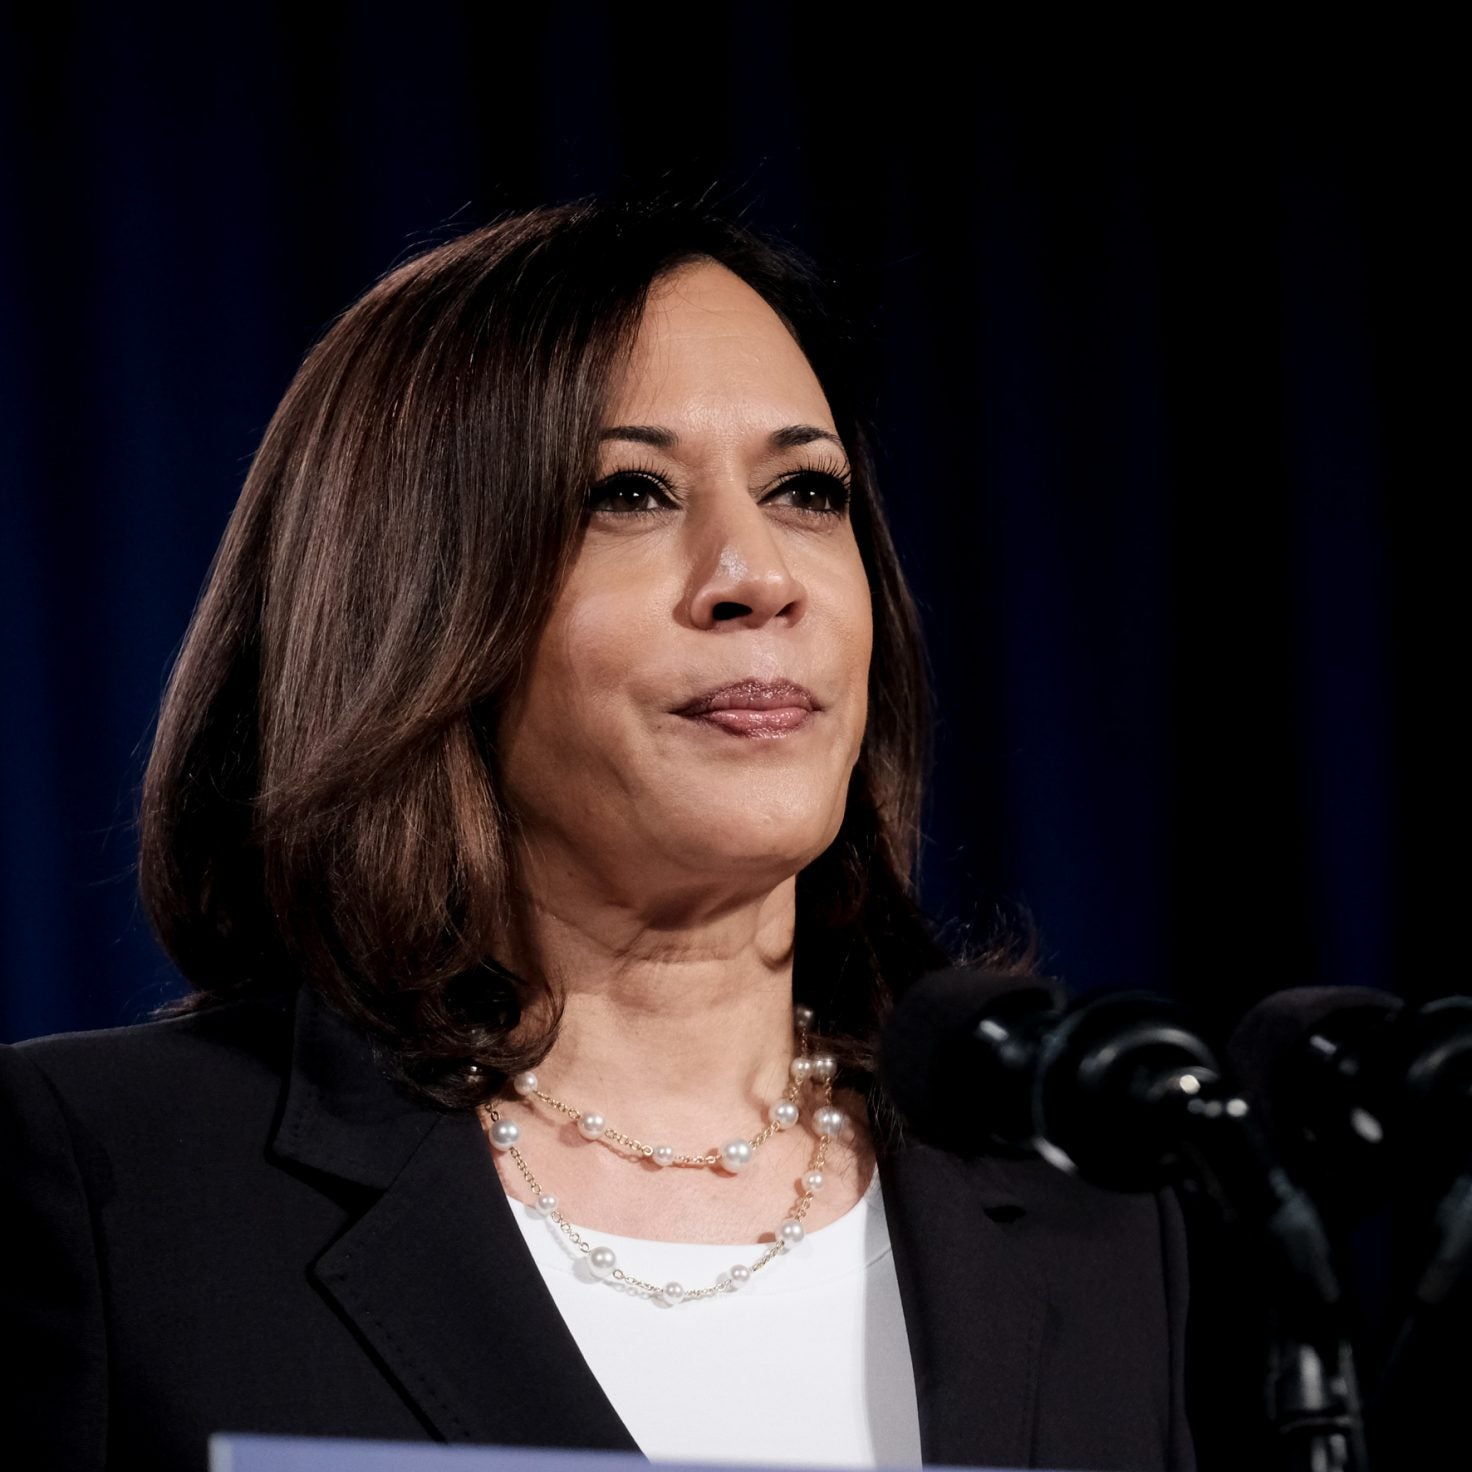 How Kamala Harris As Vice President Can Lead An Agenda Addressing And Reforming Systemic Racial Injustice